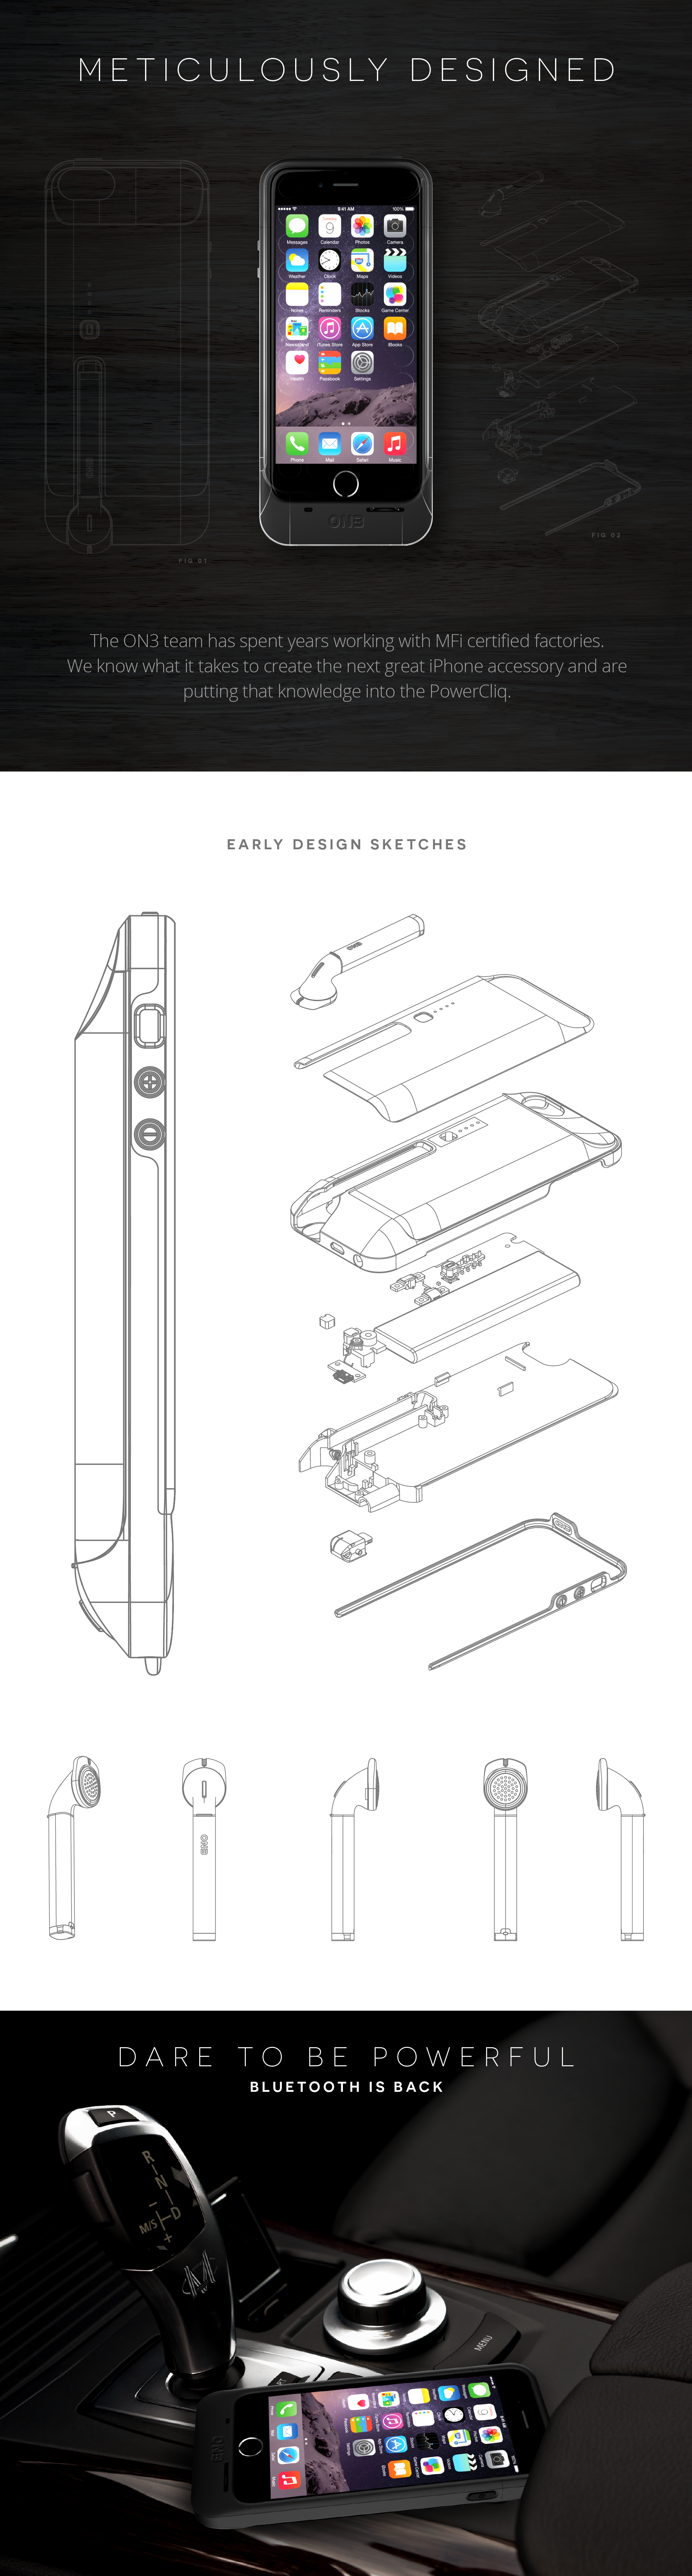 Powercliq The Next Great Iphone Case Indiegogo Schematics And Sketches Intelligent Fencing Systems Frequently Asked Questions